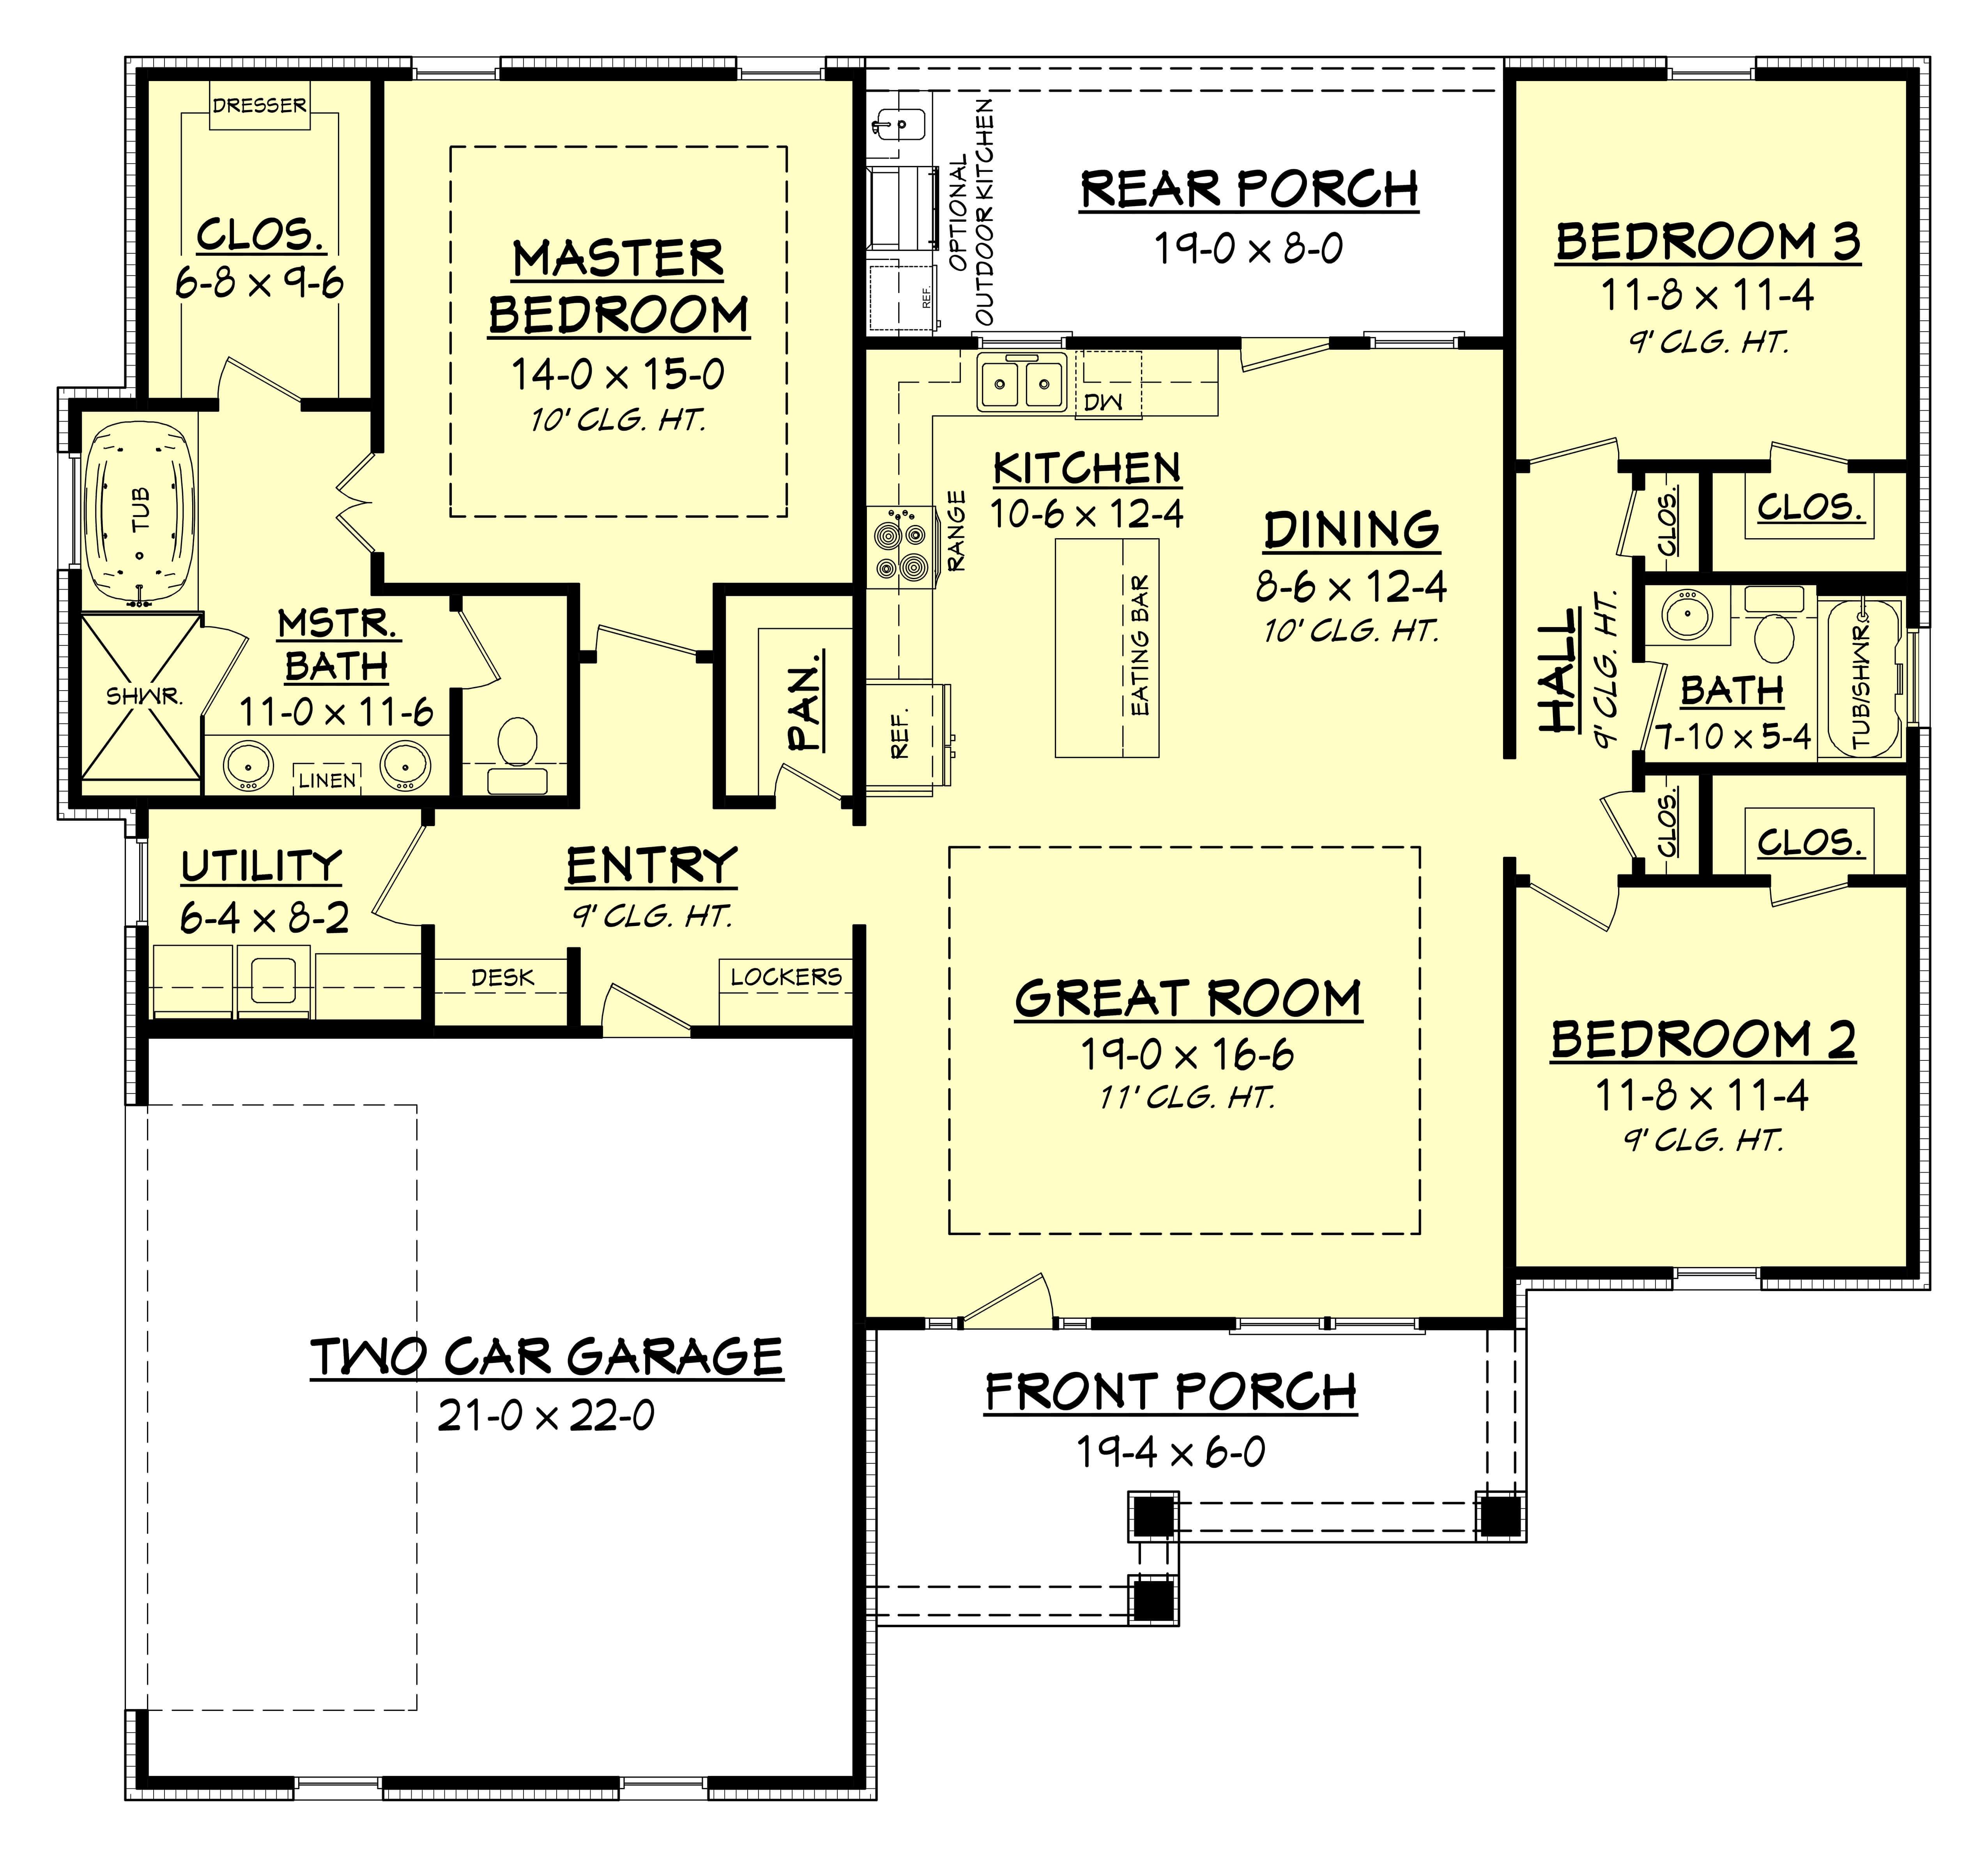 3 bedrm 1657 sq ft traditional house plan 142 1176 for Large simple house plans